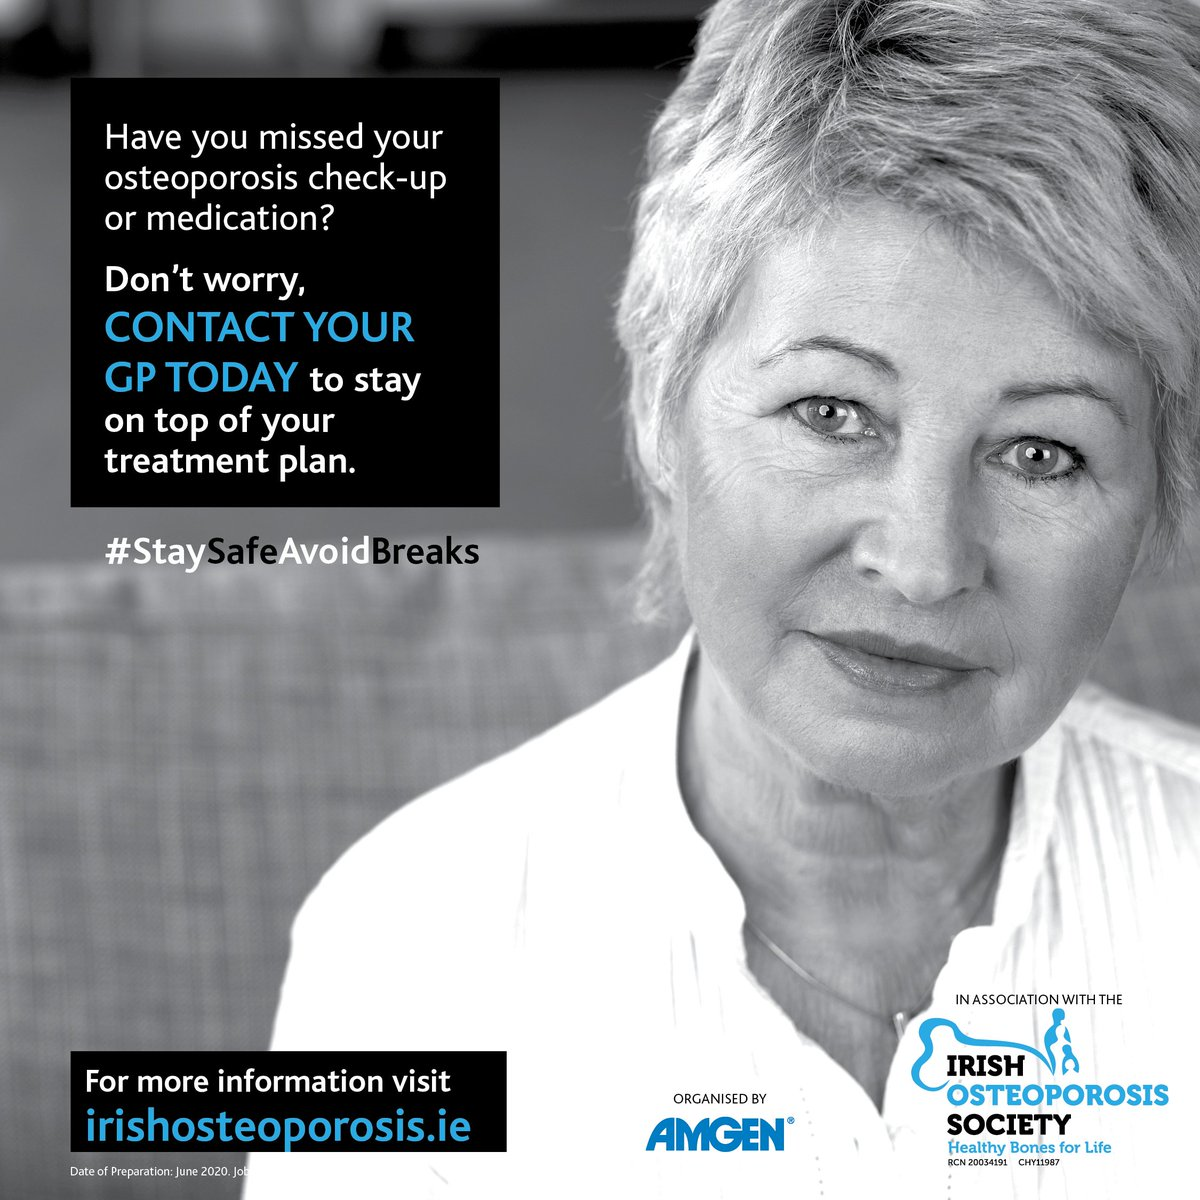 Call your GP to discuss the best options when it comes to managing osteoporosis during this time. For more information visit our education hub #StaySafeAvoidBreaks https://t.co/GJ7auhPKtS https://t.co/xoRZYUGxGl